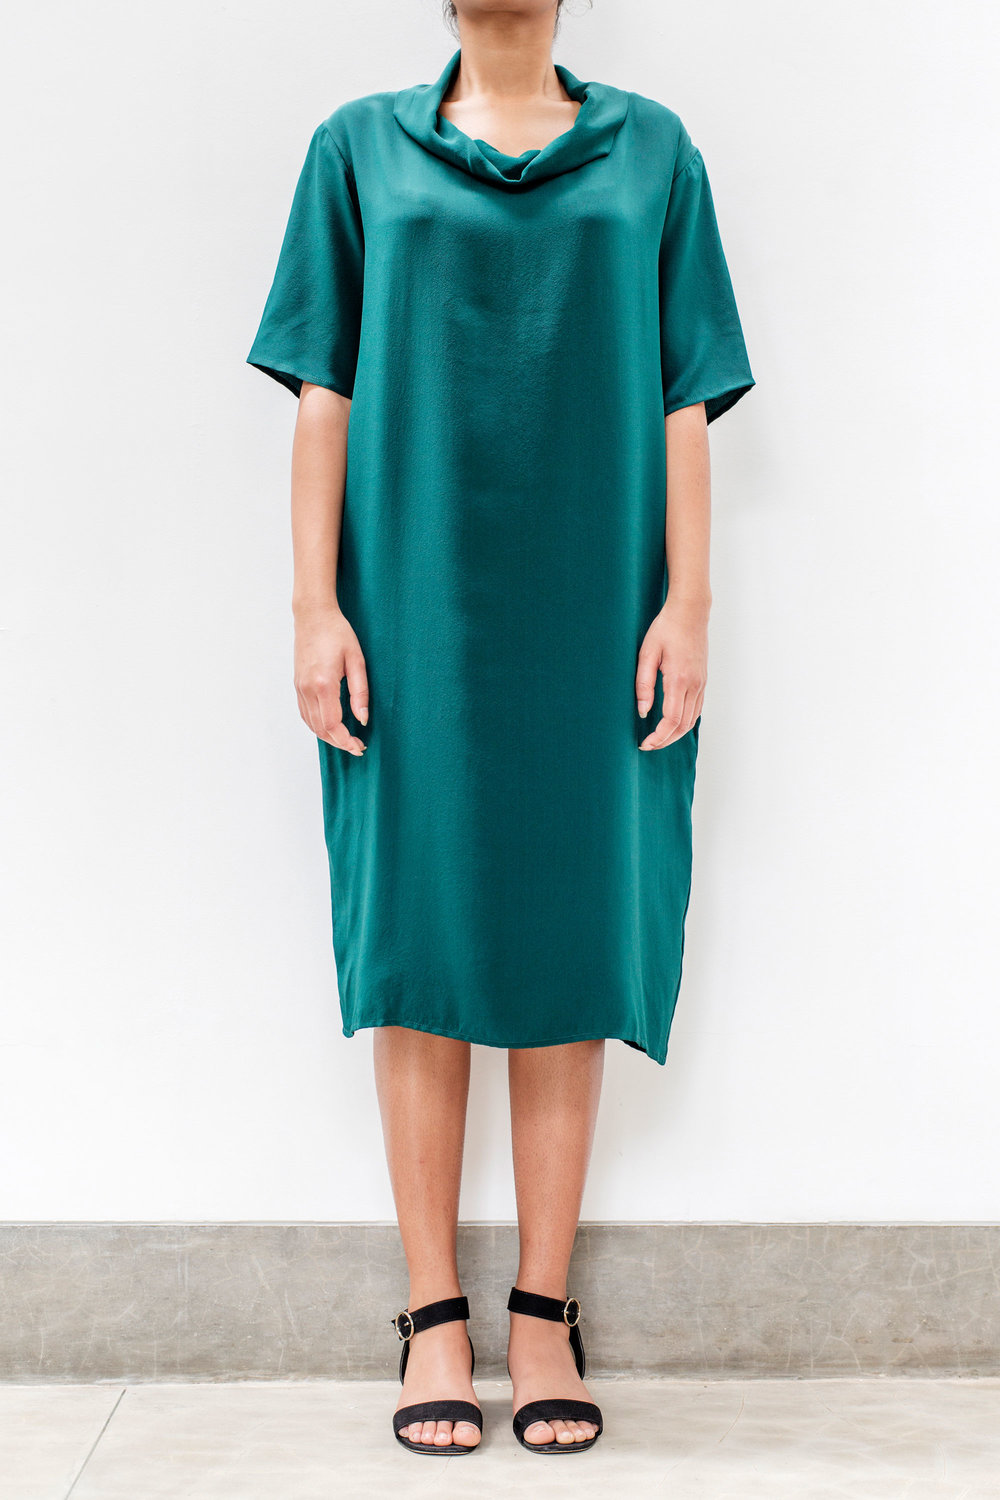 ELLA-COWL-NECK-SHIFT---EMERALD.jpg